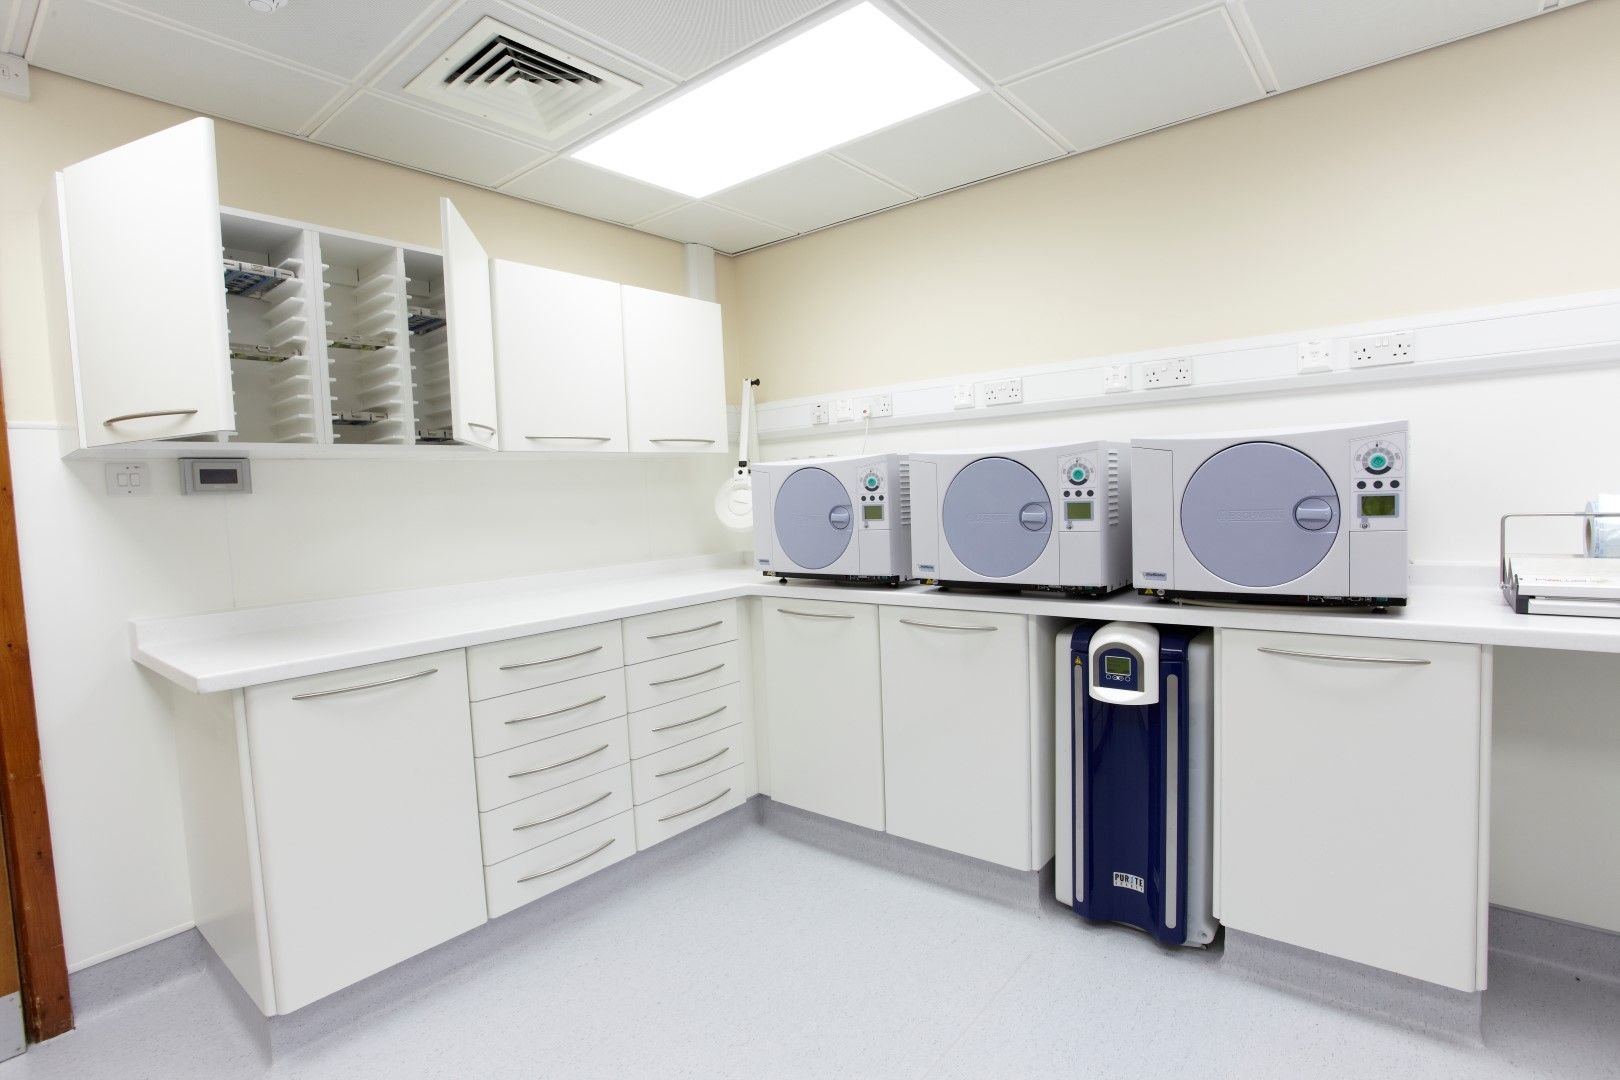 Made To Measure Dental Cabinetry At Liverpool Road Dental Surgery  # Luverpool Muebles